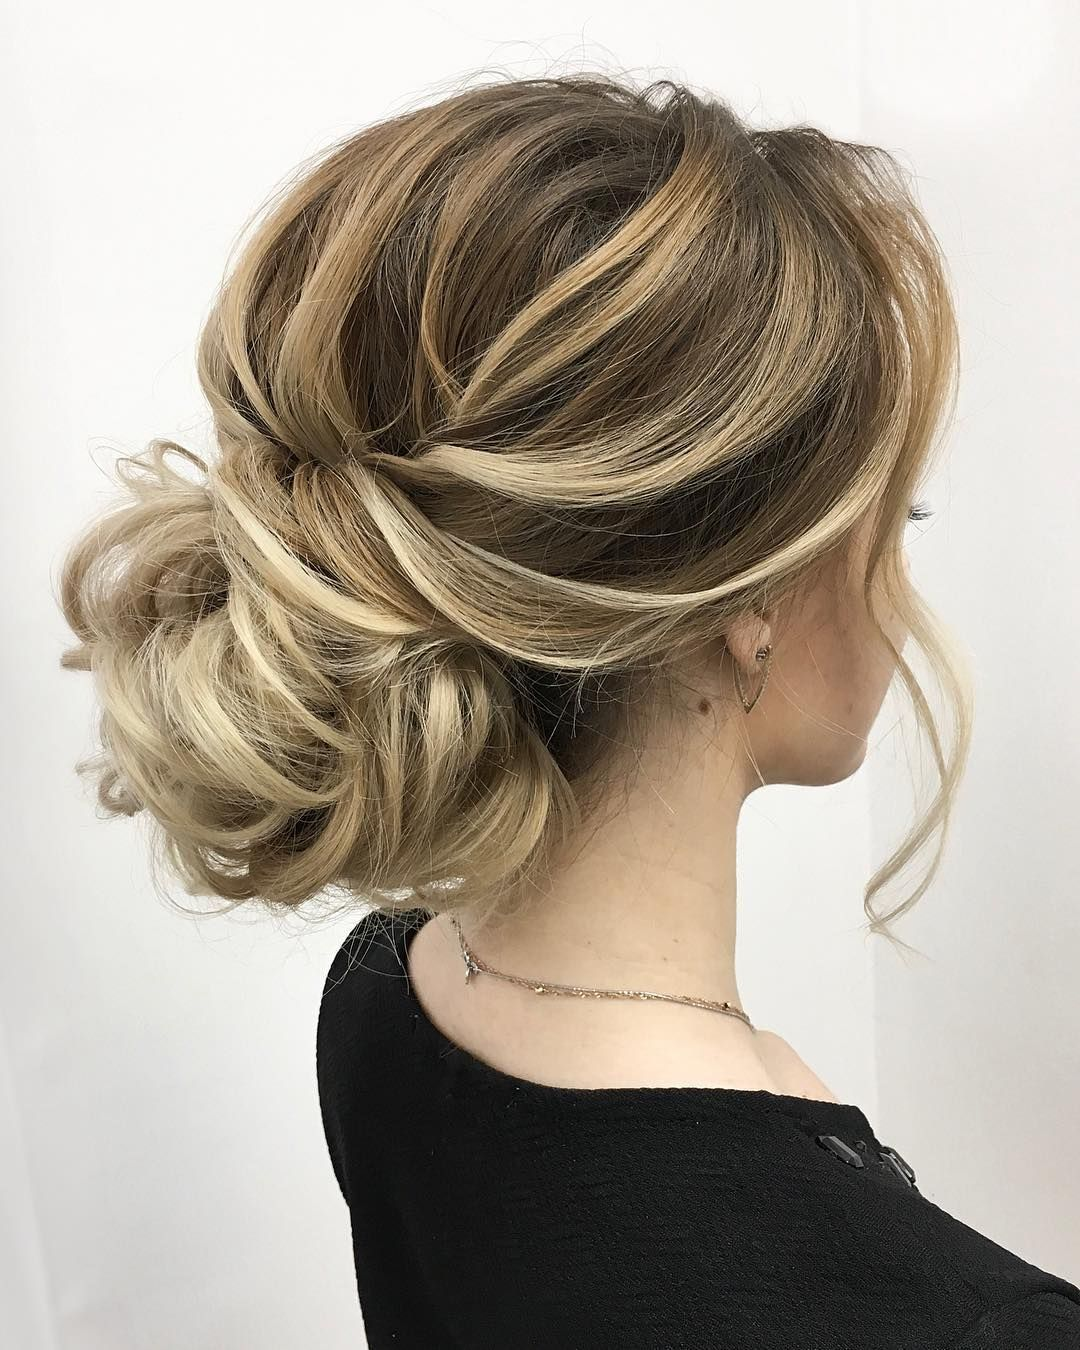 textured wedding updo hairstyle ,messy updo wedding